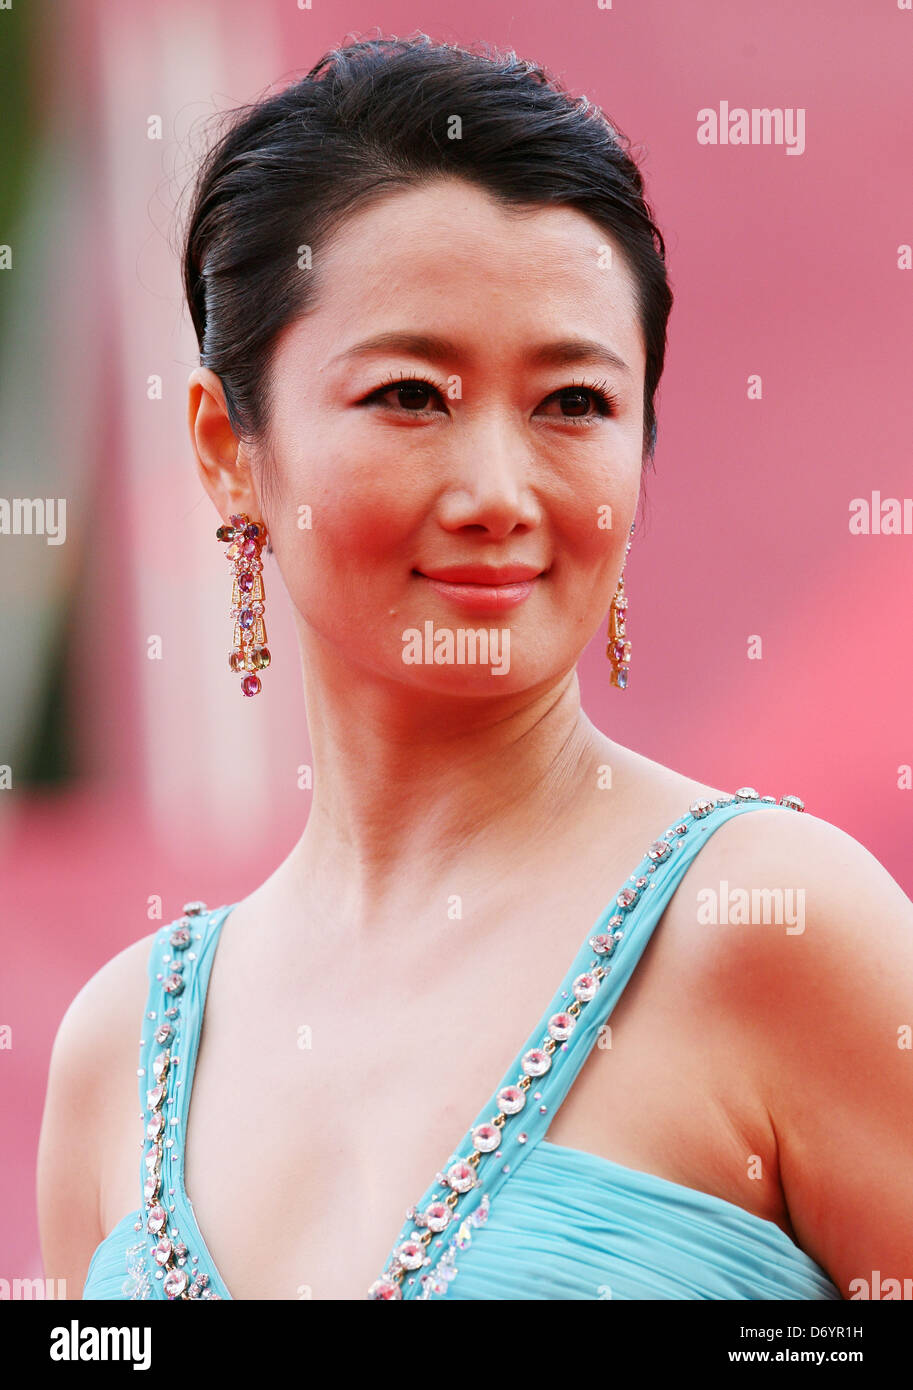 Discussion on this topic: Lili Estefan, zhao-tao/